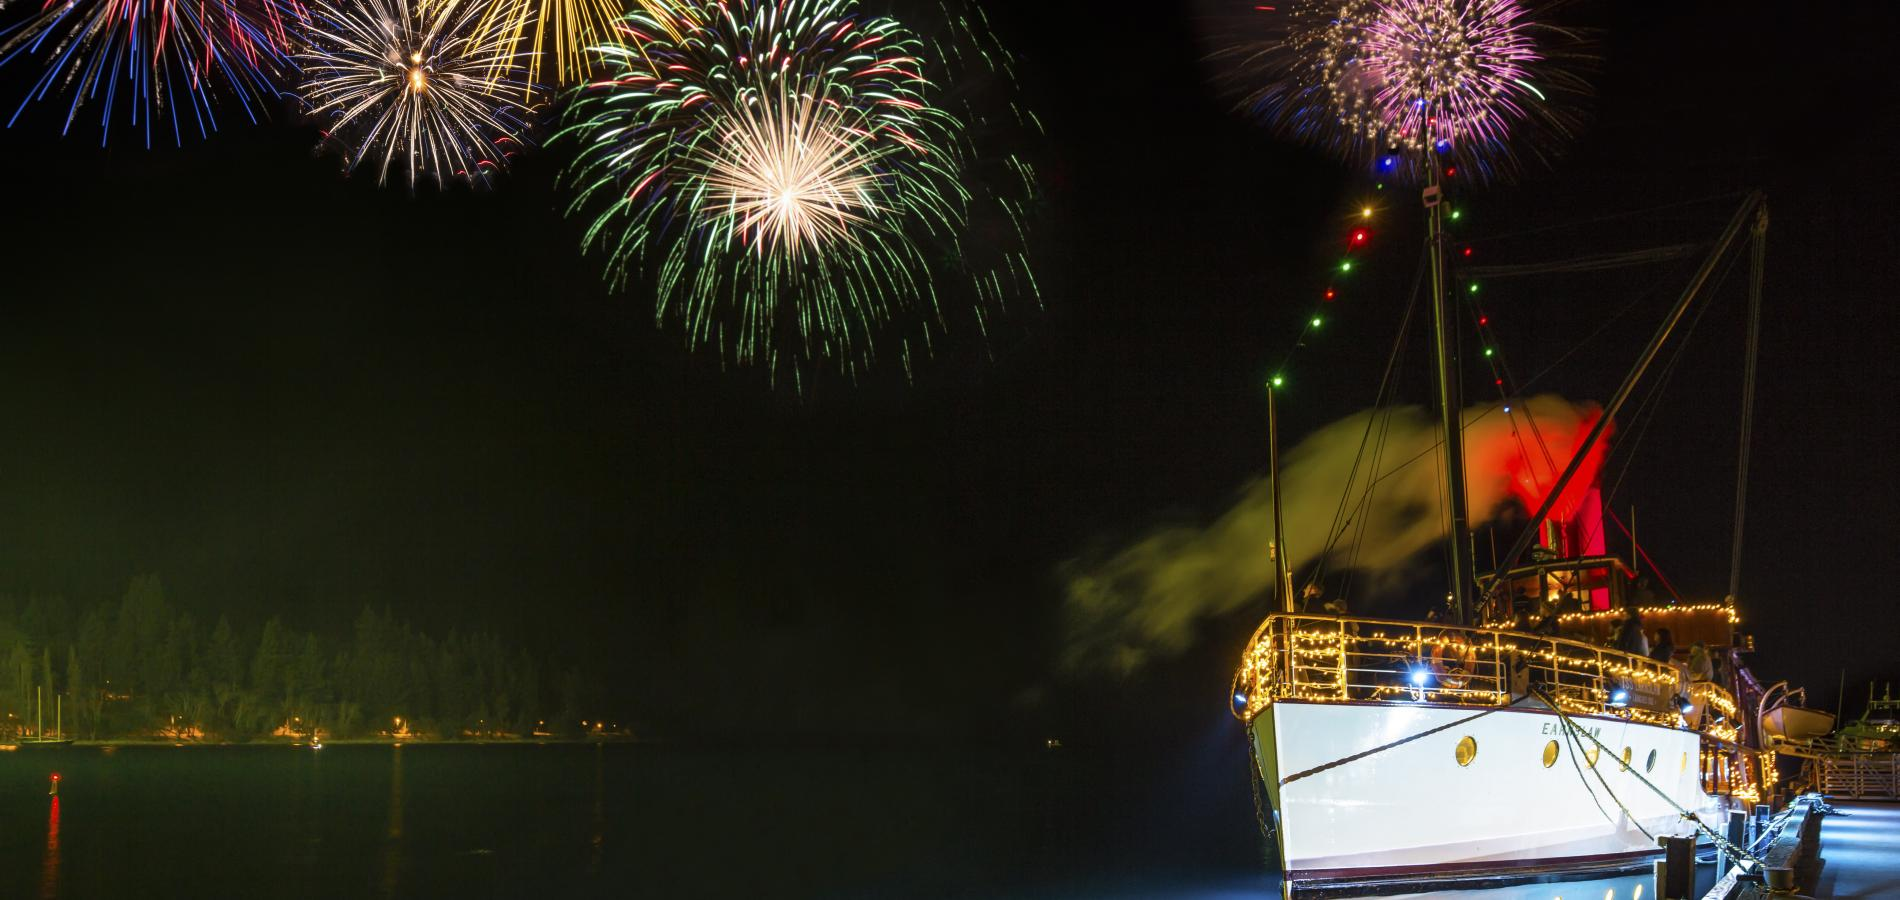 The Real Journeys Queenstown Winter Festival - fireworks over Lake Wakatipu with the historic steamer TSS Earnslaw in the foreground